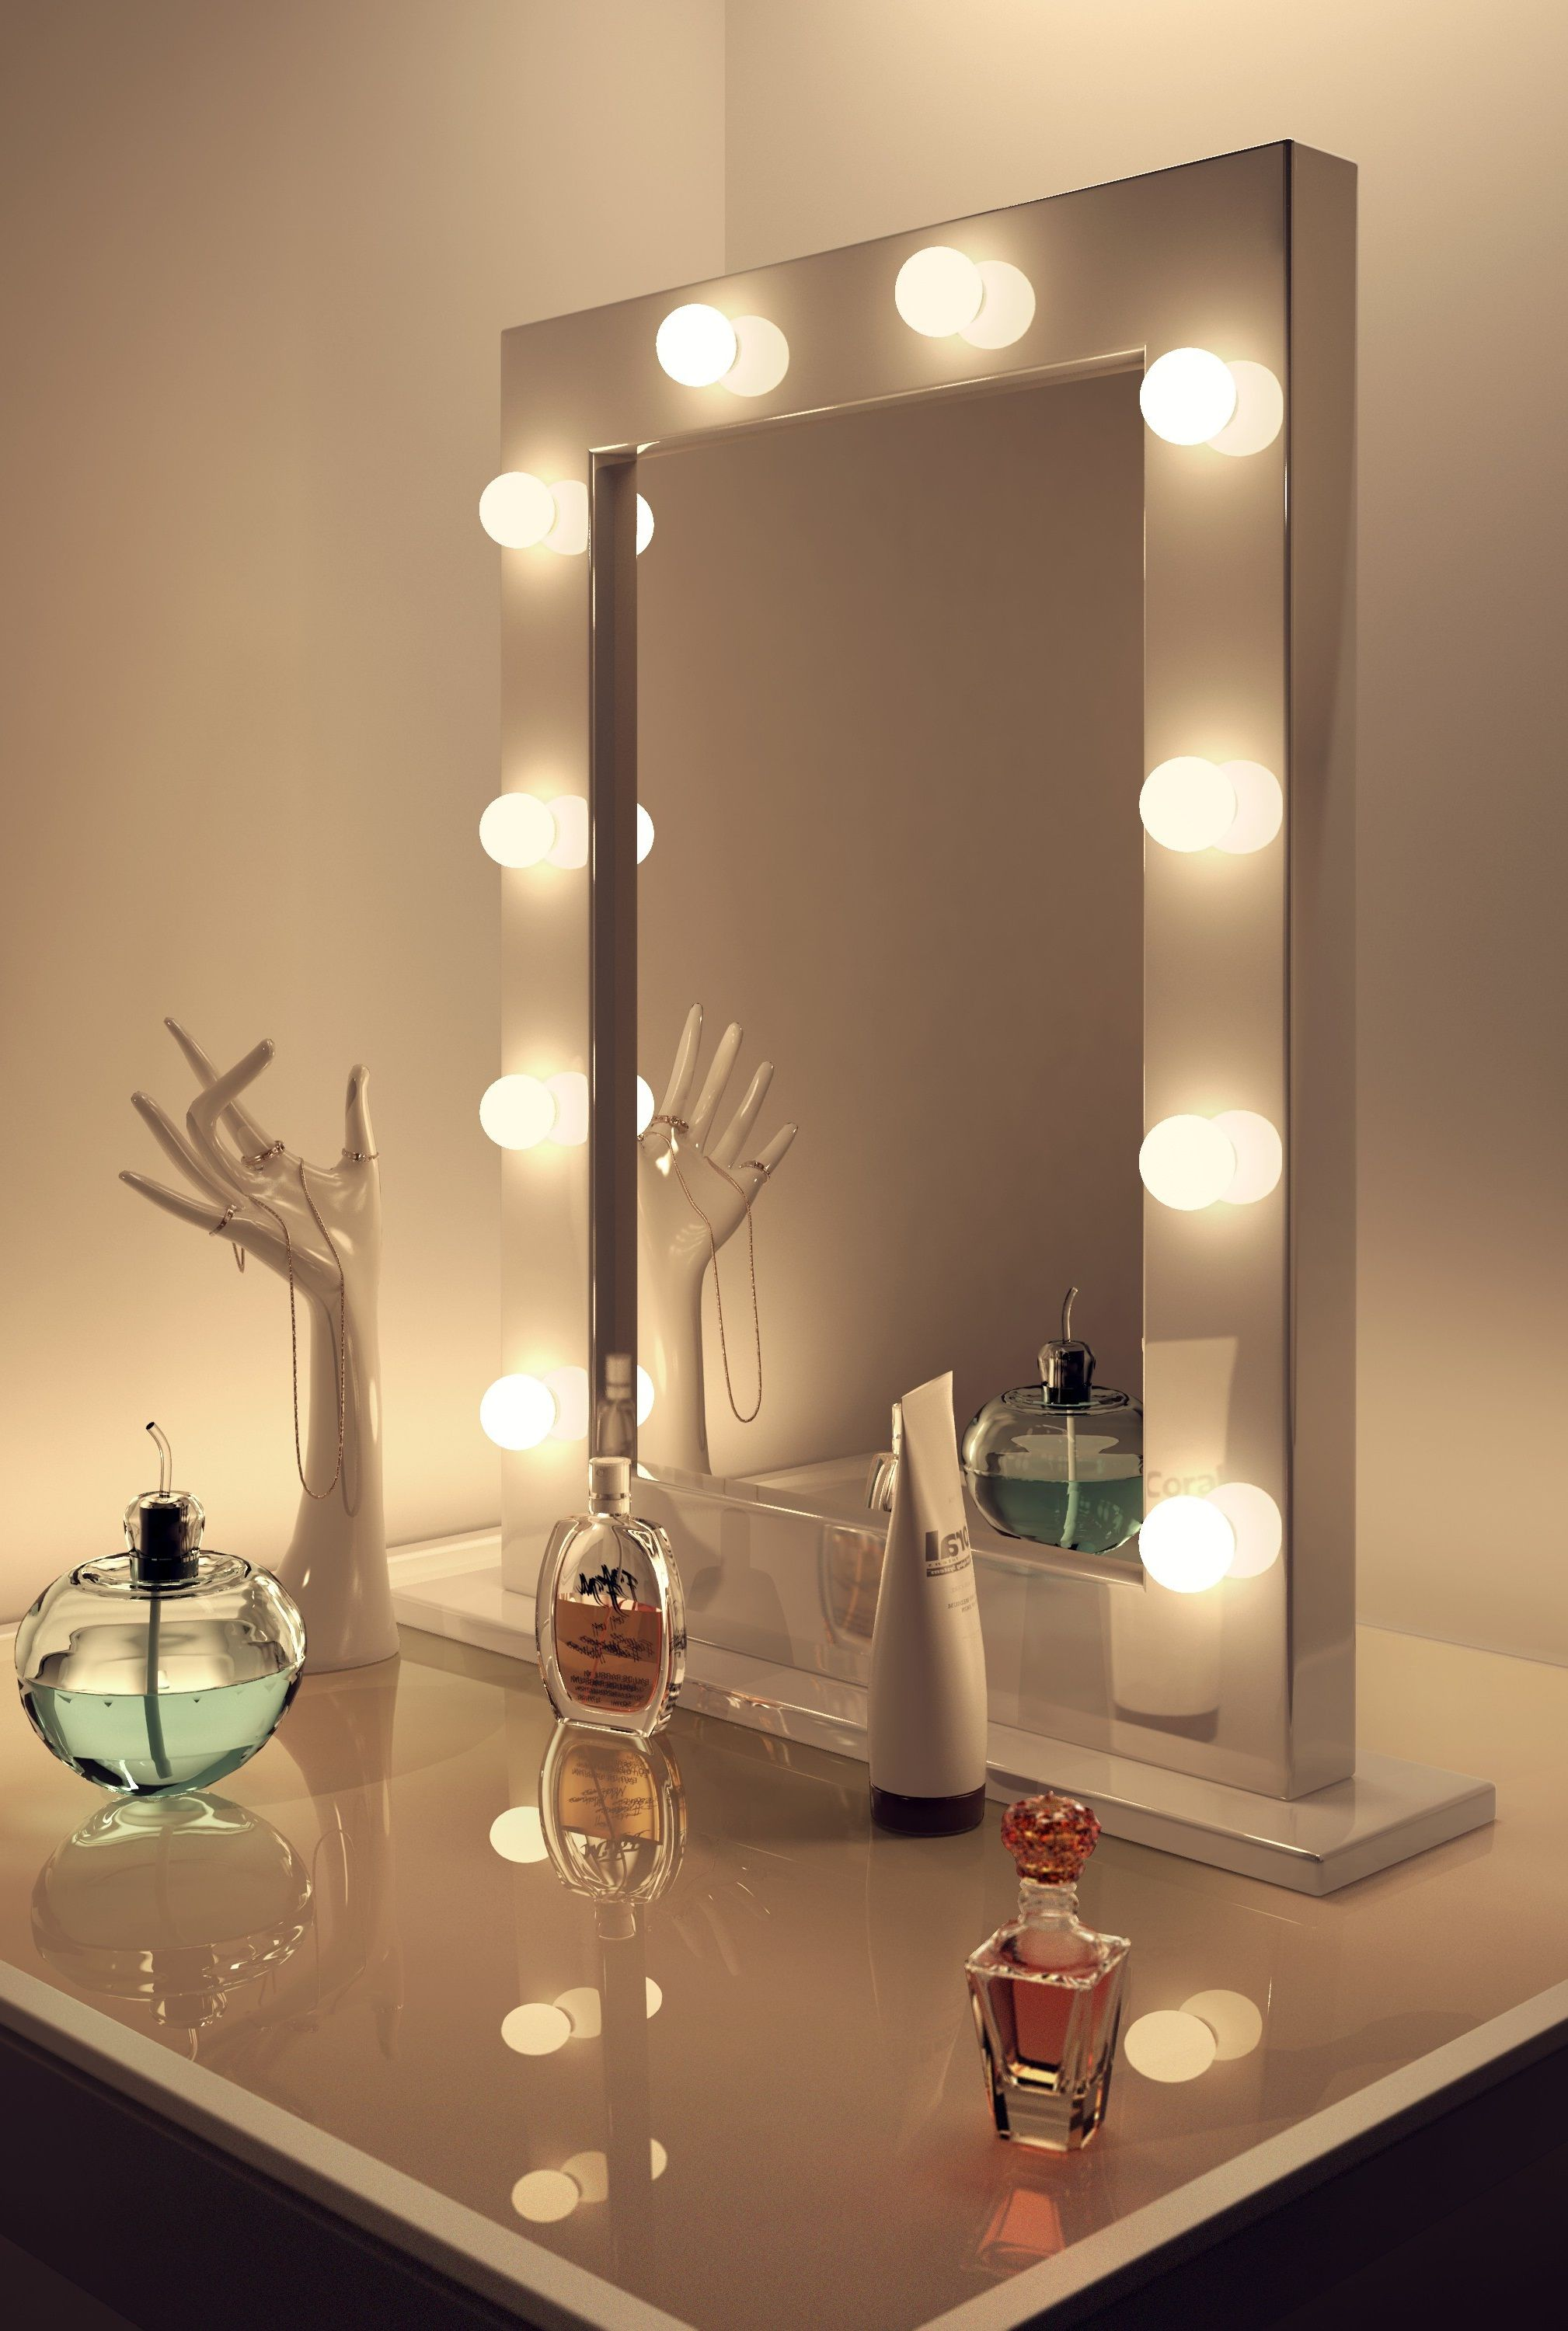 Surprising Vanity Mirror Lights | Interior | Pinterest | Vanities ...